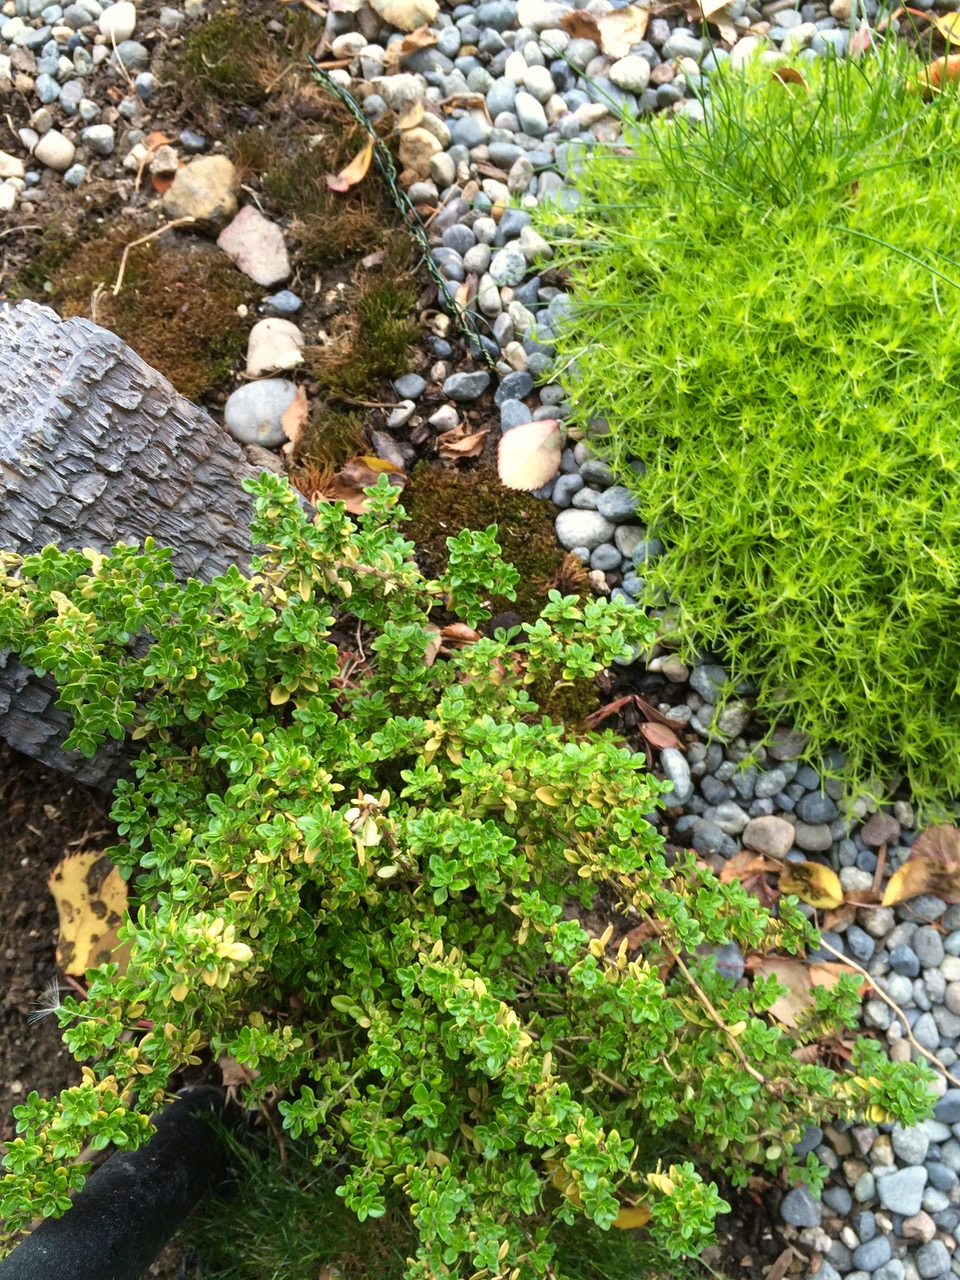 Thyme and Scotch Moss grow in the village.